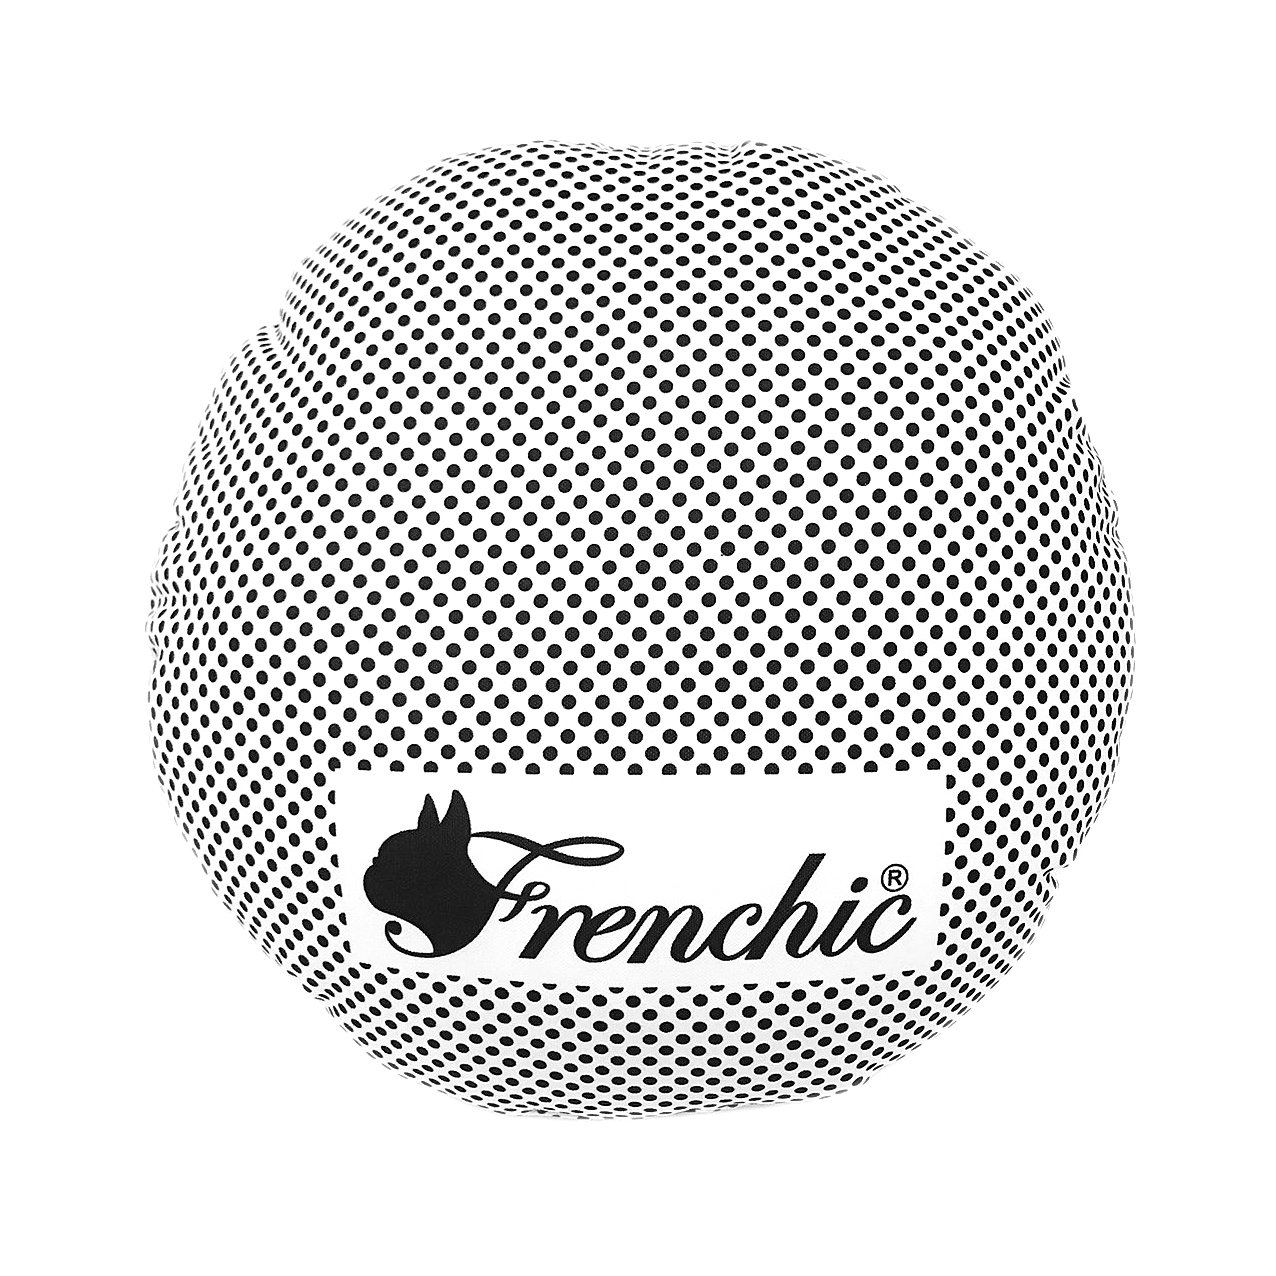 French Bulldog Small Round Cushion 34cm x 34 cm Black and White Dot with Sublimation Cover (No inner bag) Home Decor New Collection Frenchic